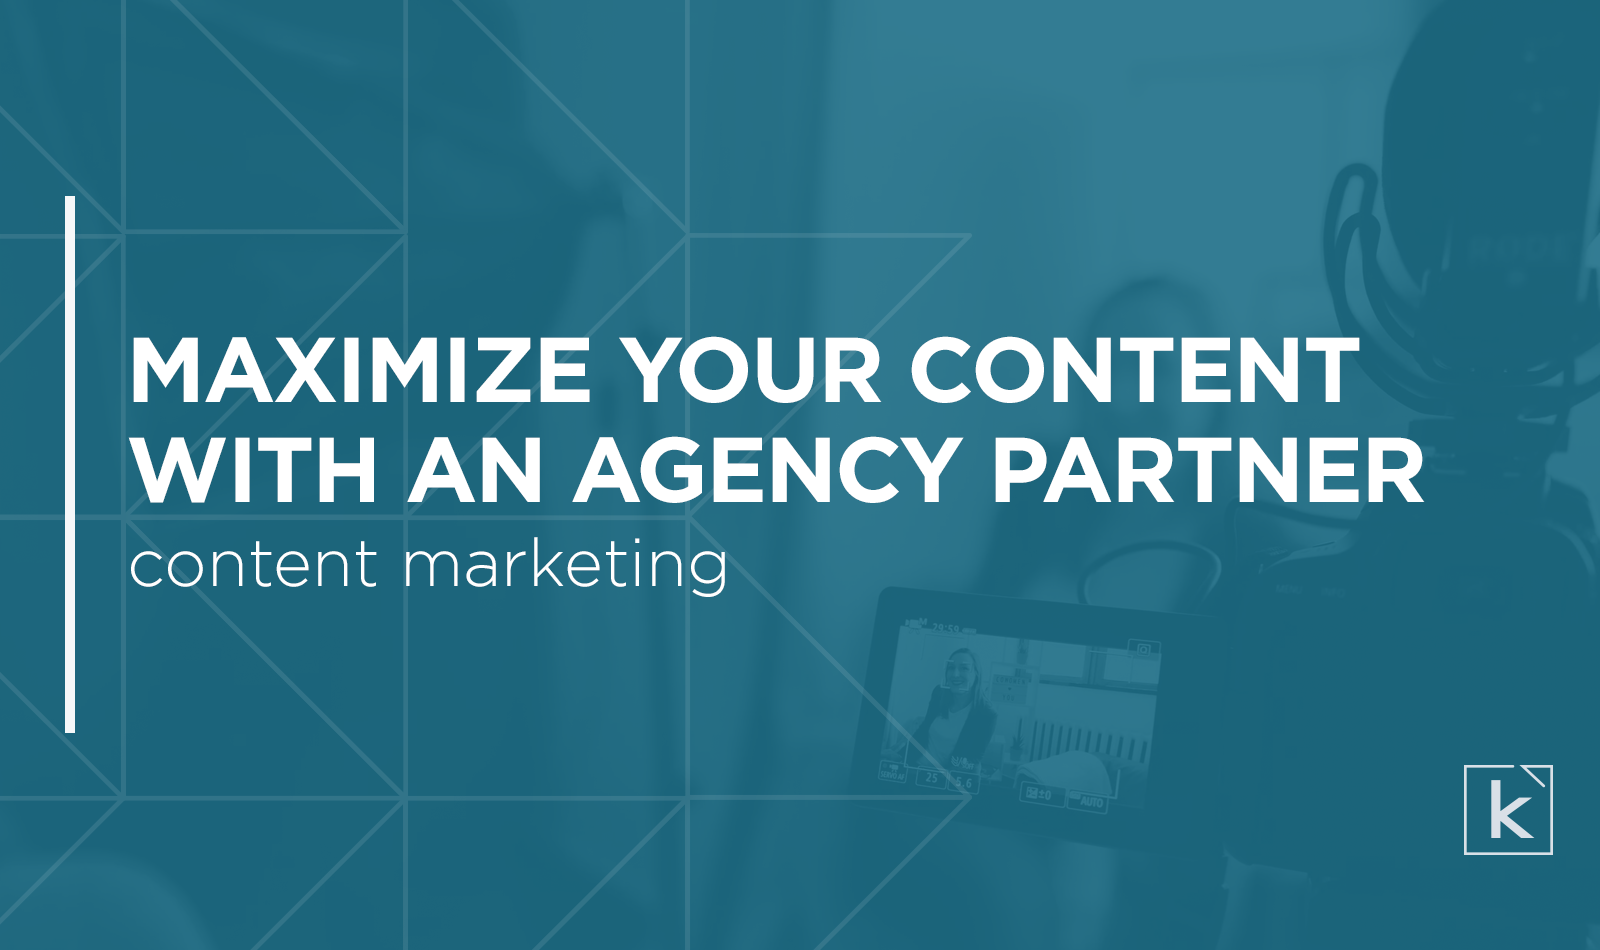 maximize-your-content-agency-partner